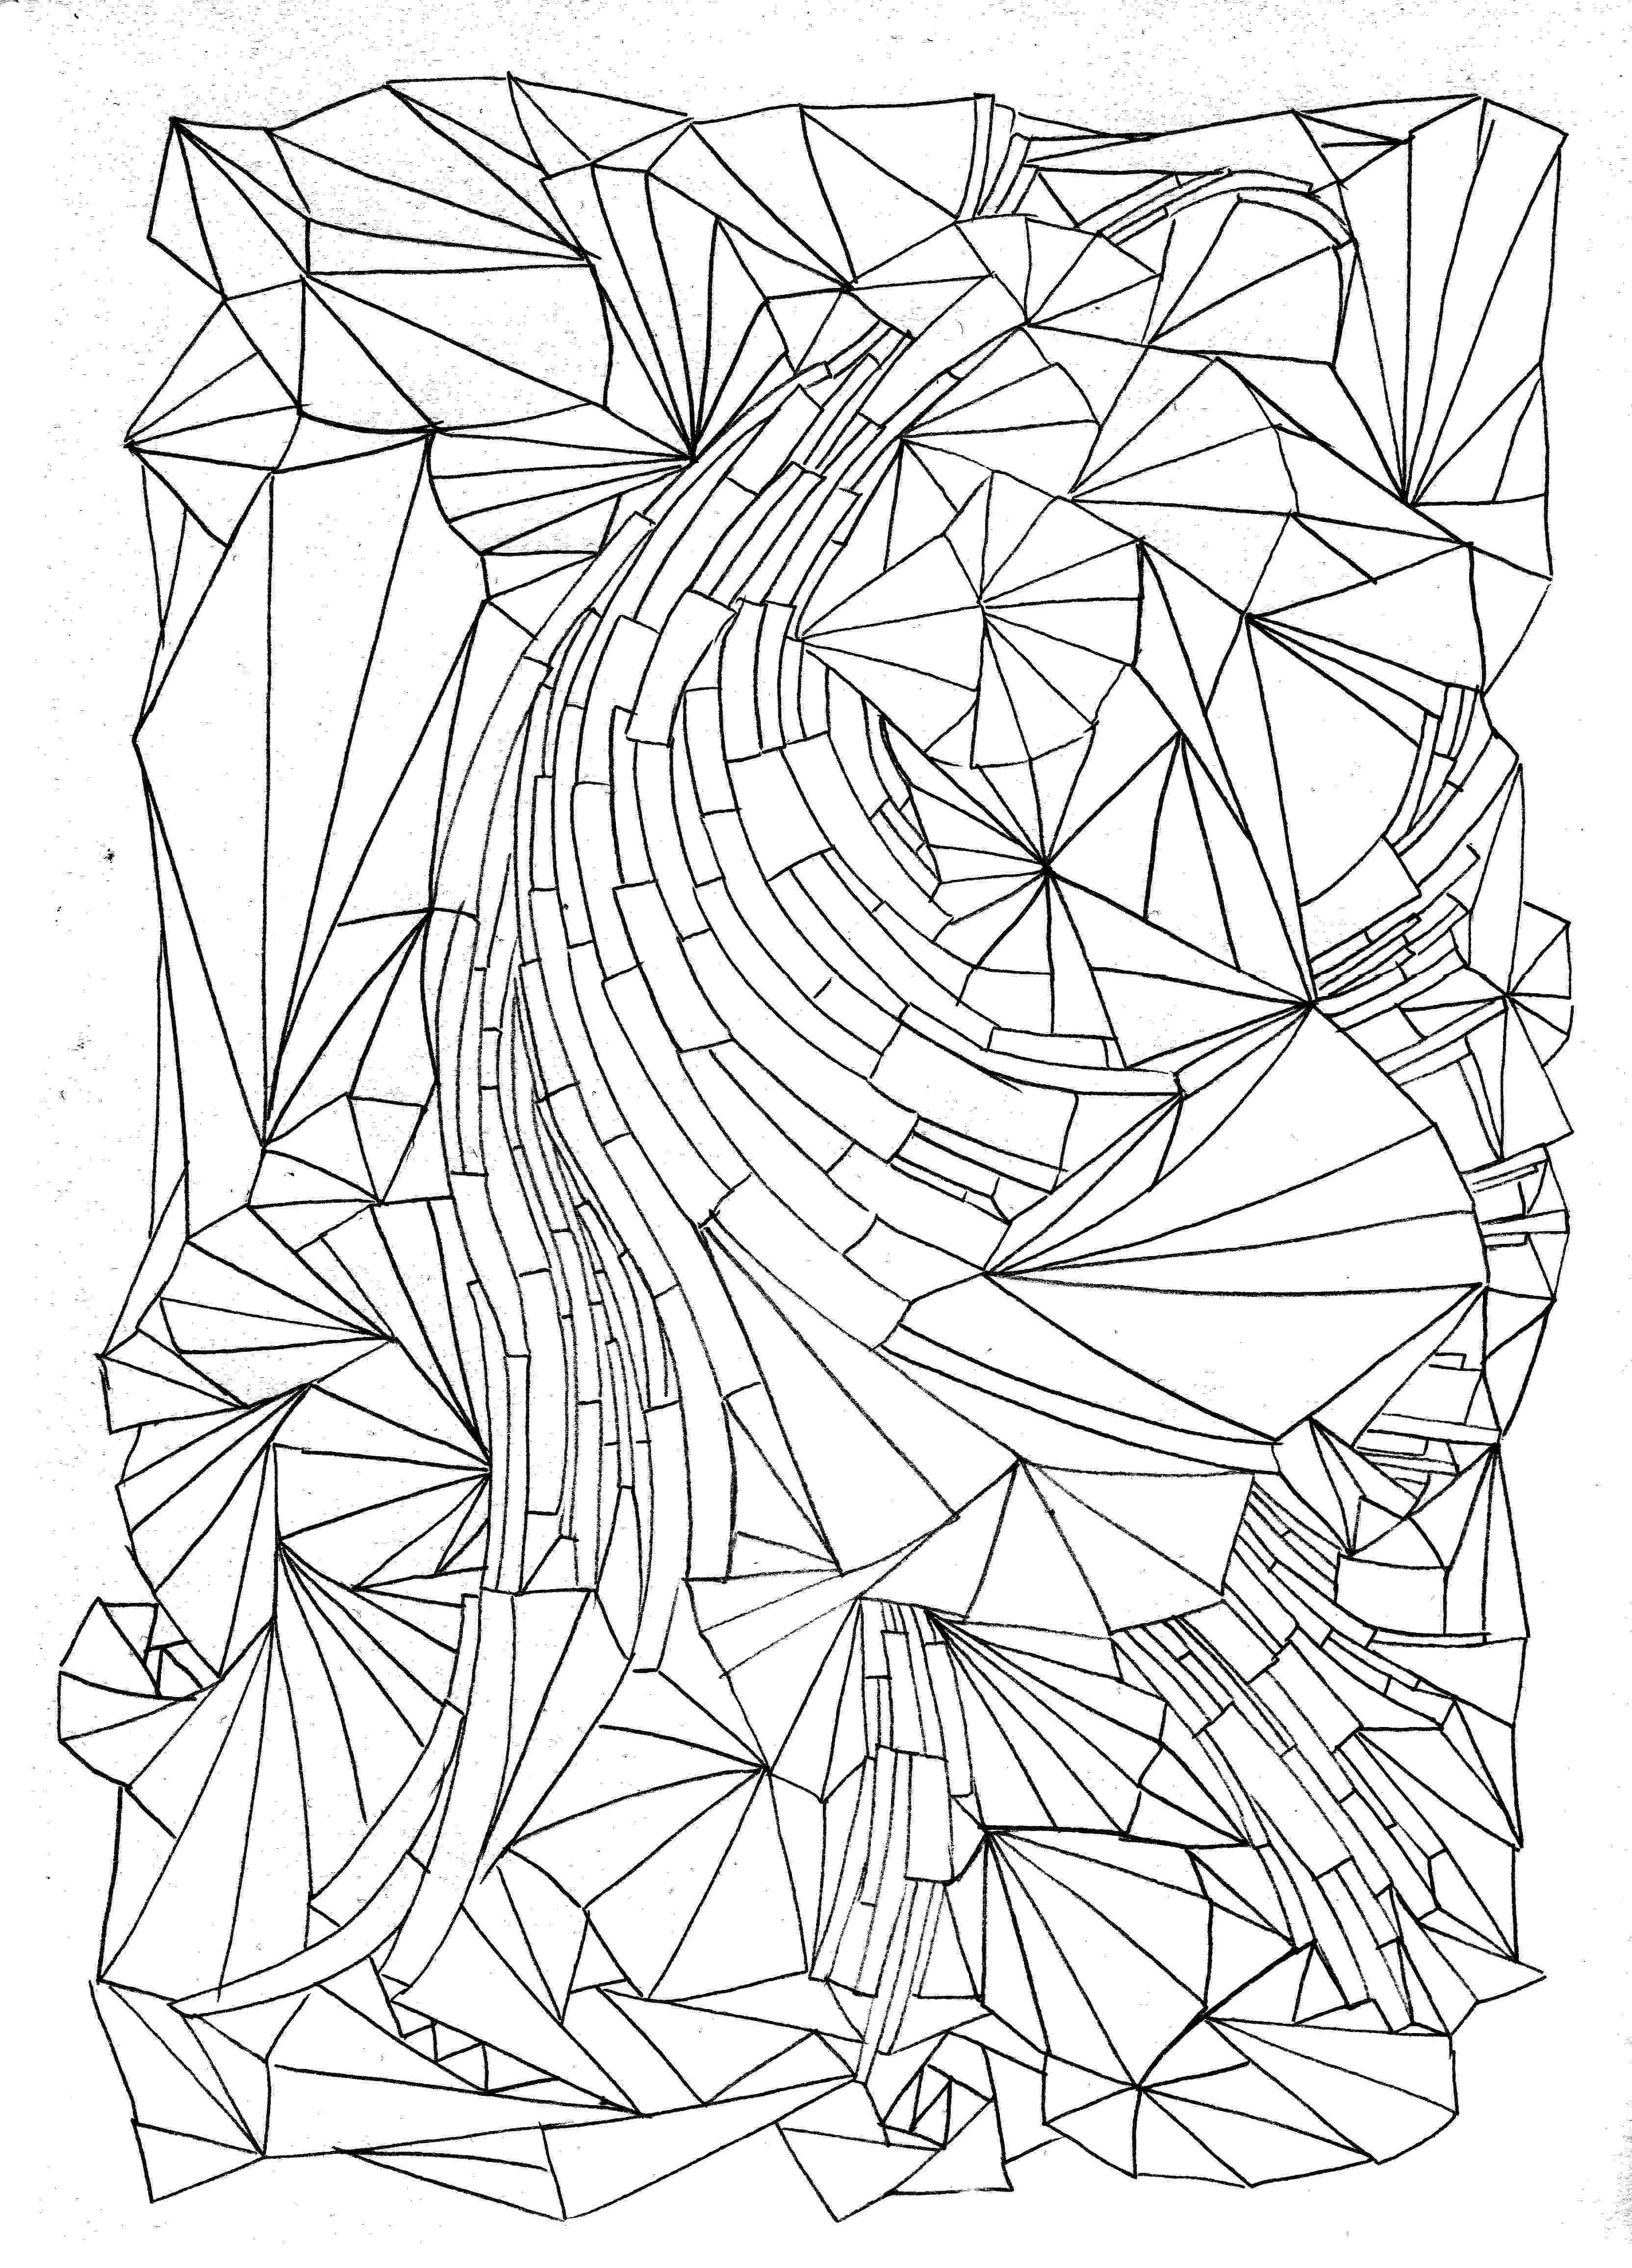 free coloring pages with designs flowers paisley design coloring pages hellokidscom designs coloring free pages with